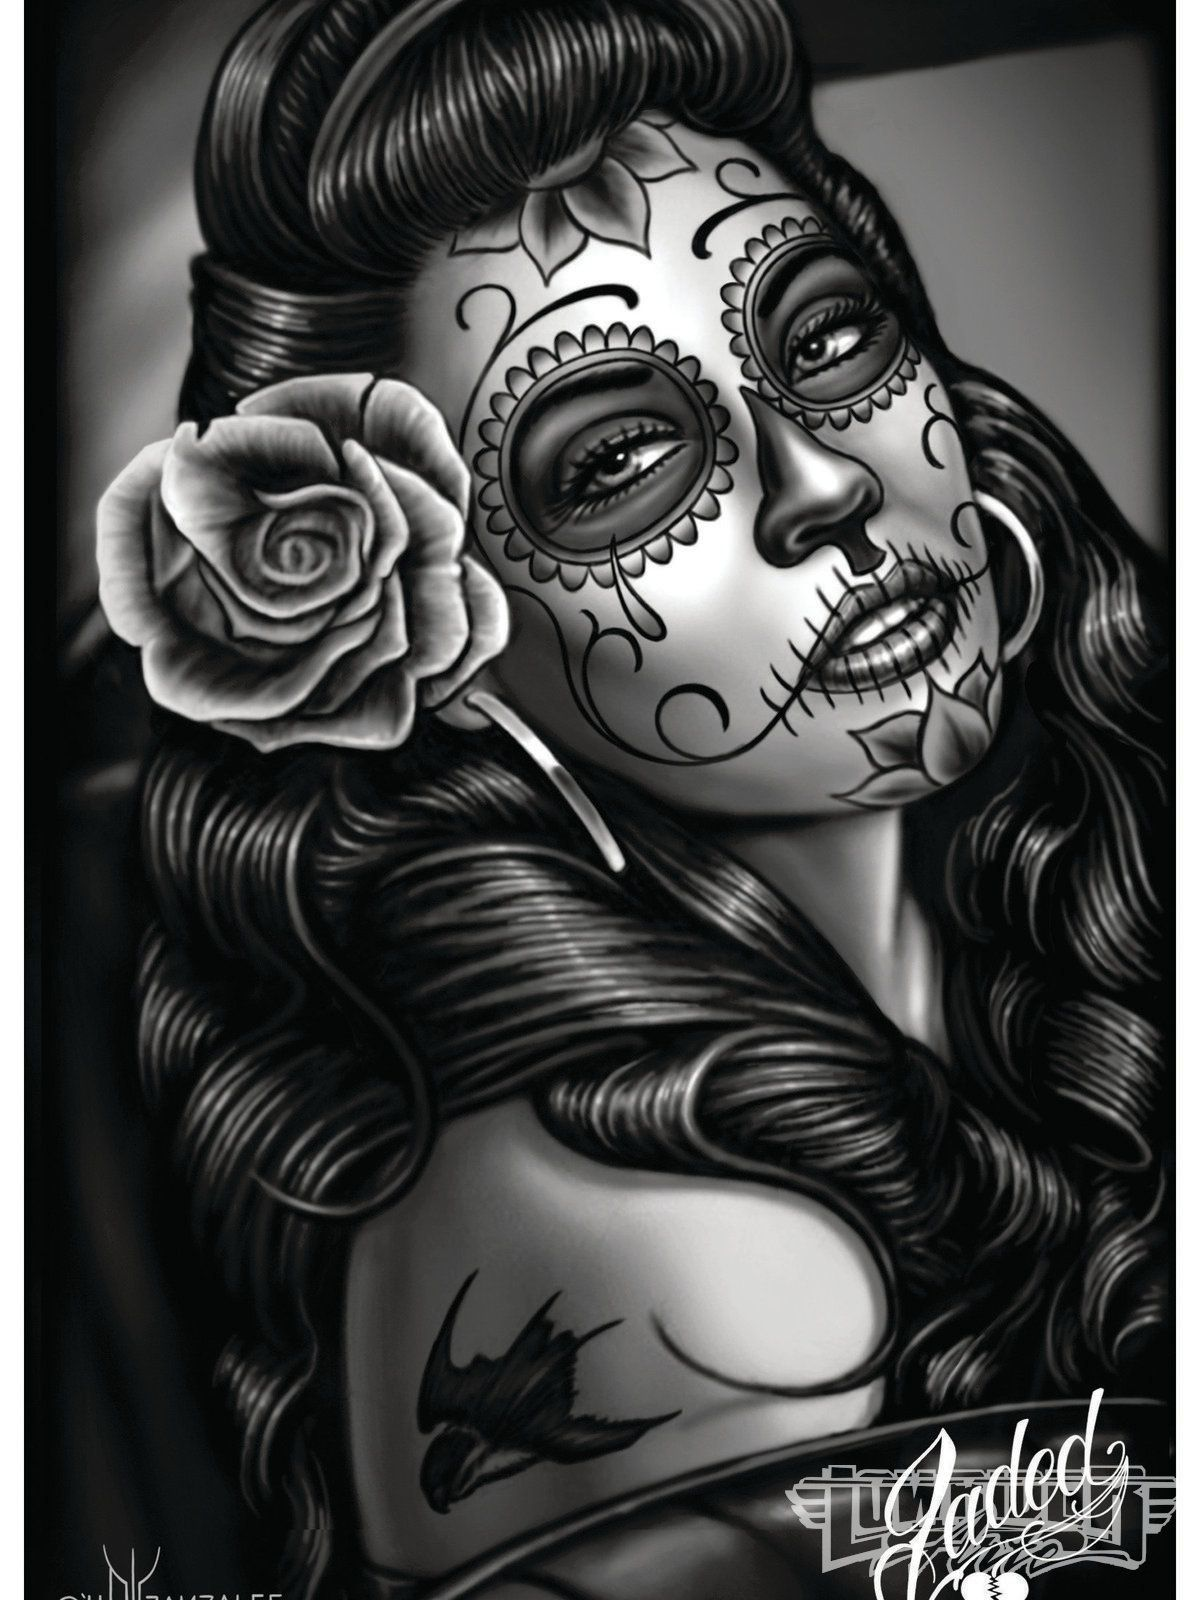 lowrider tattoo art dia de los muertos chicano art on pinterest l. Black Bedroom Furniture Sets. Home Design Ideas